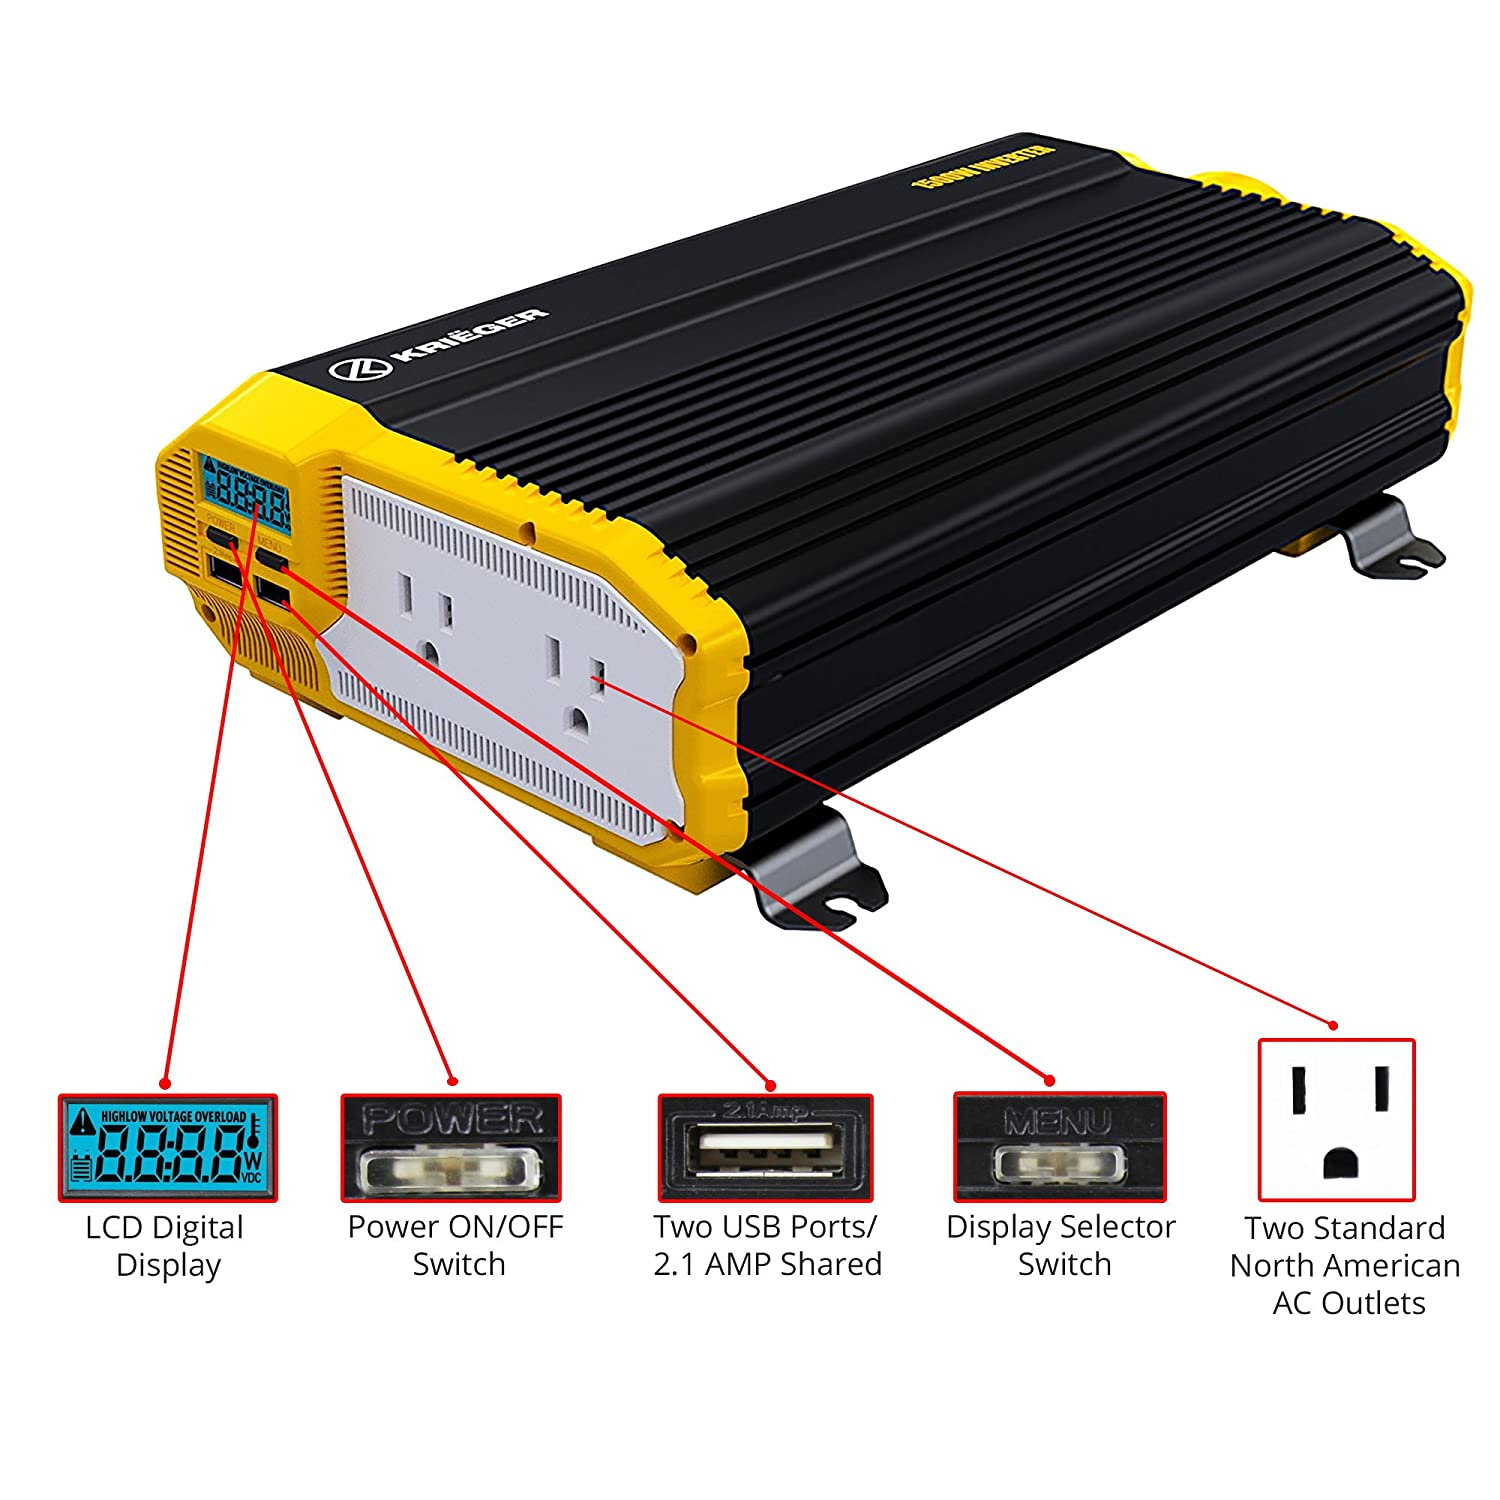 Kriger 1100 Watt 12v Power Inverter Dual 110v Ac 110 To 12 Volt Dc Converter Wiring Diagram Outlets Installation Kit Included Automotive Back Up Supply For Blenders Vacuums